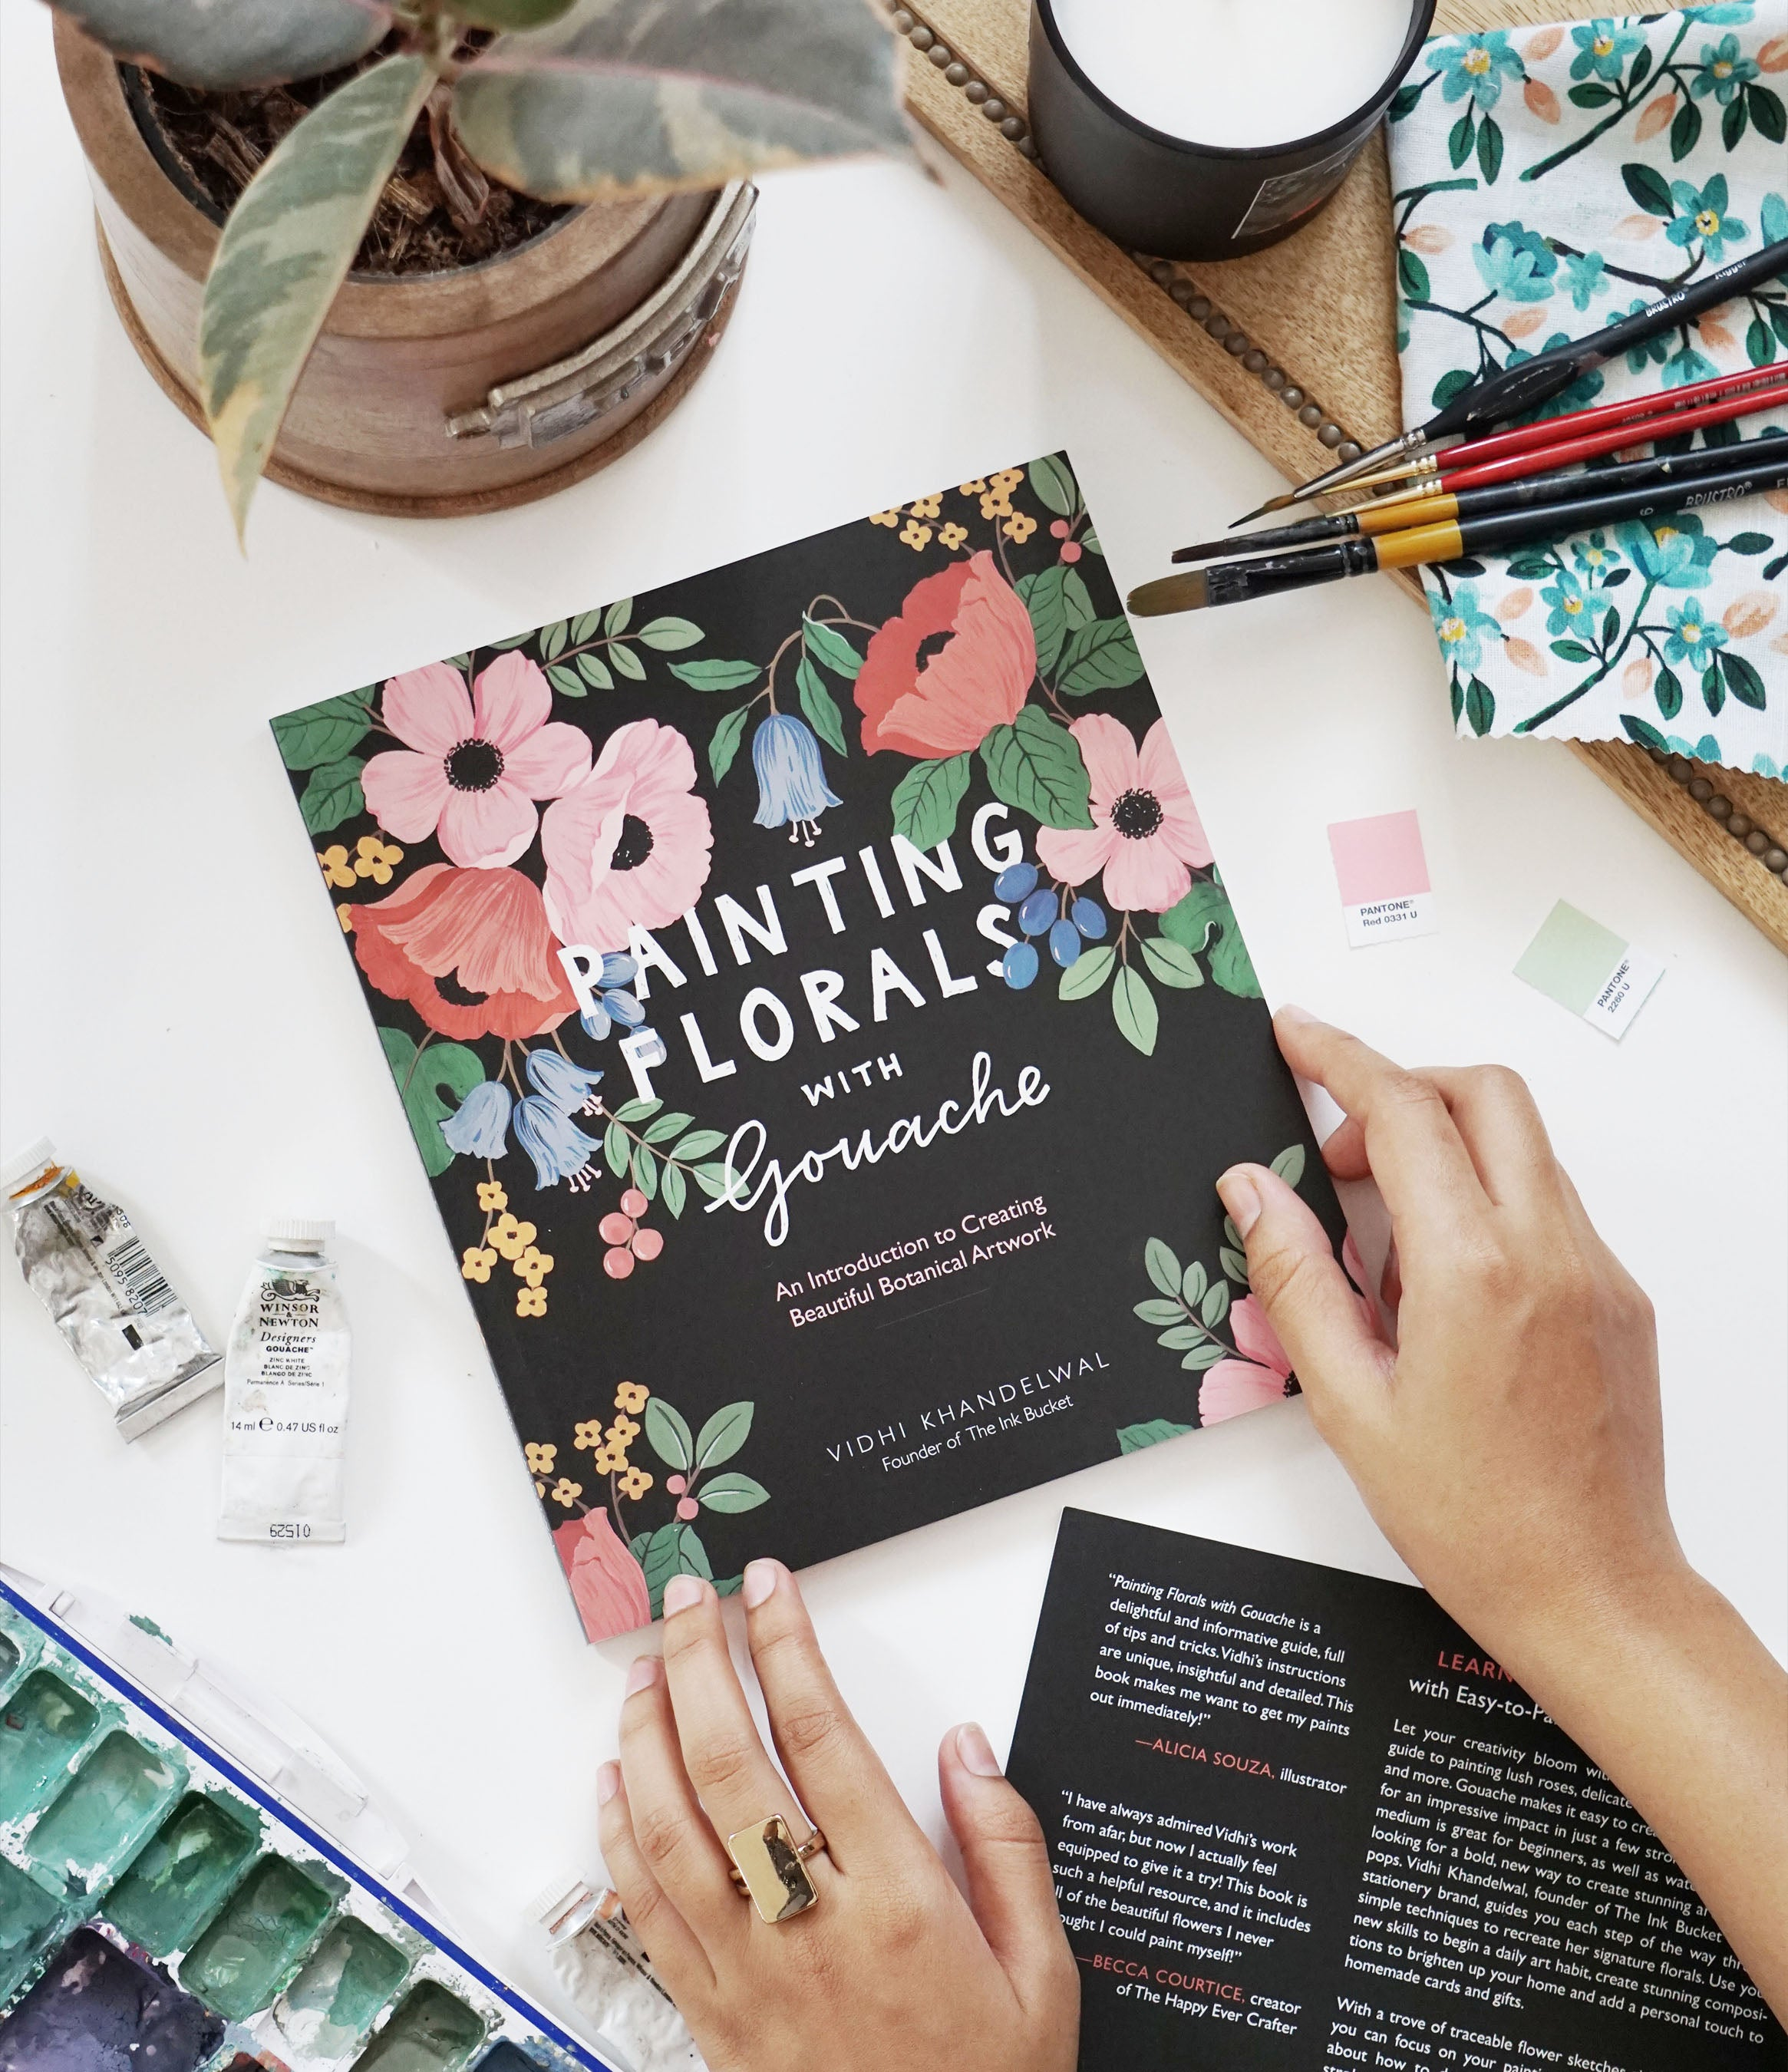 Painting Florals with Gouache (Paperback)